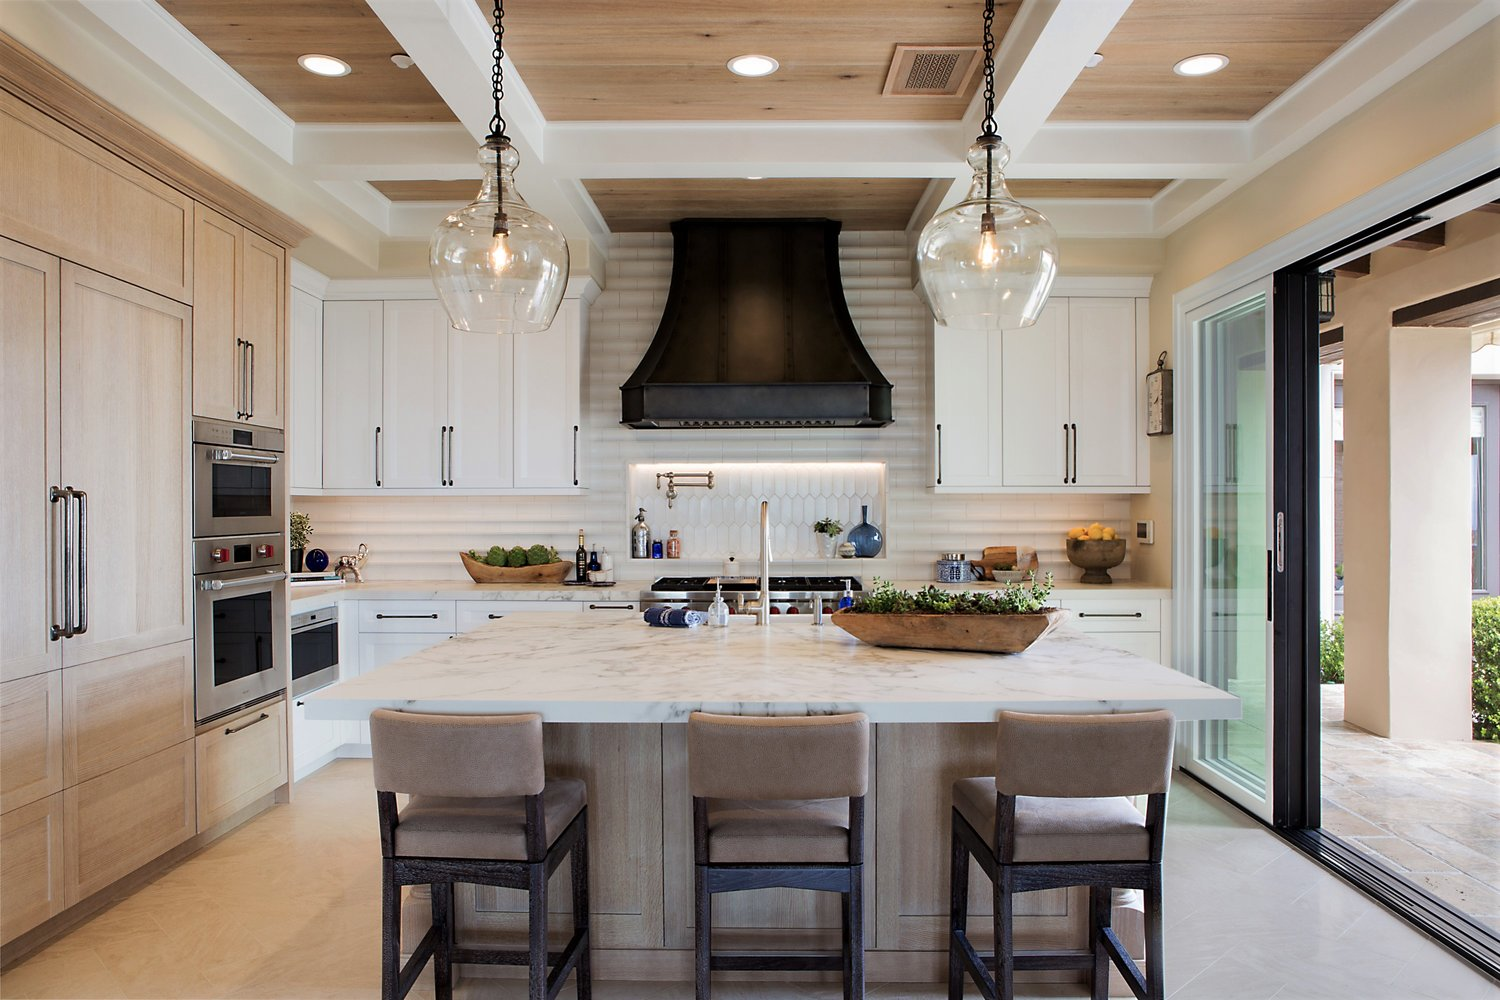 Enhance Your Home With a Luxury Kitchen